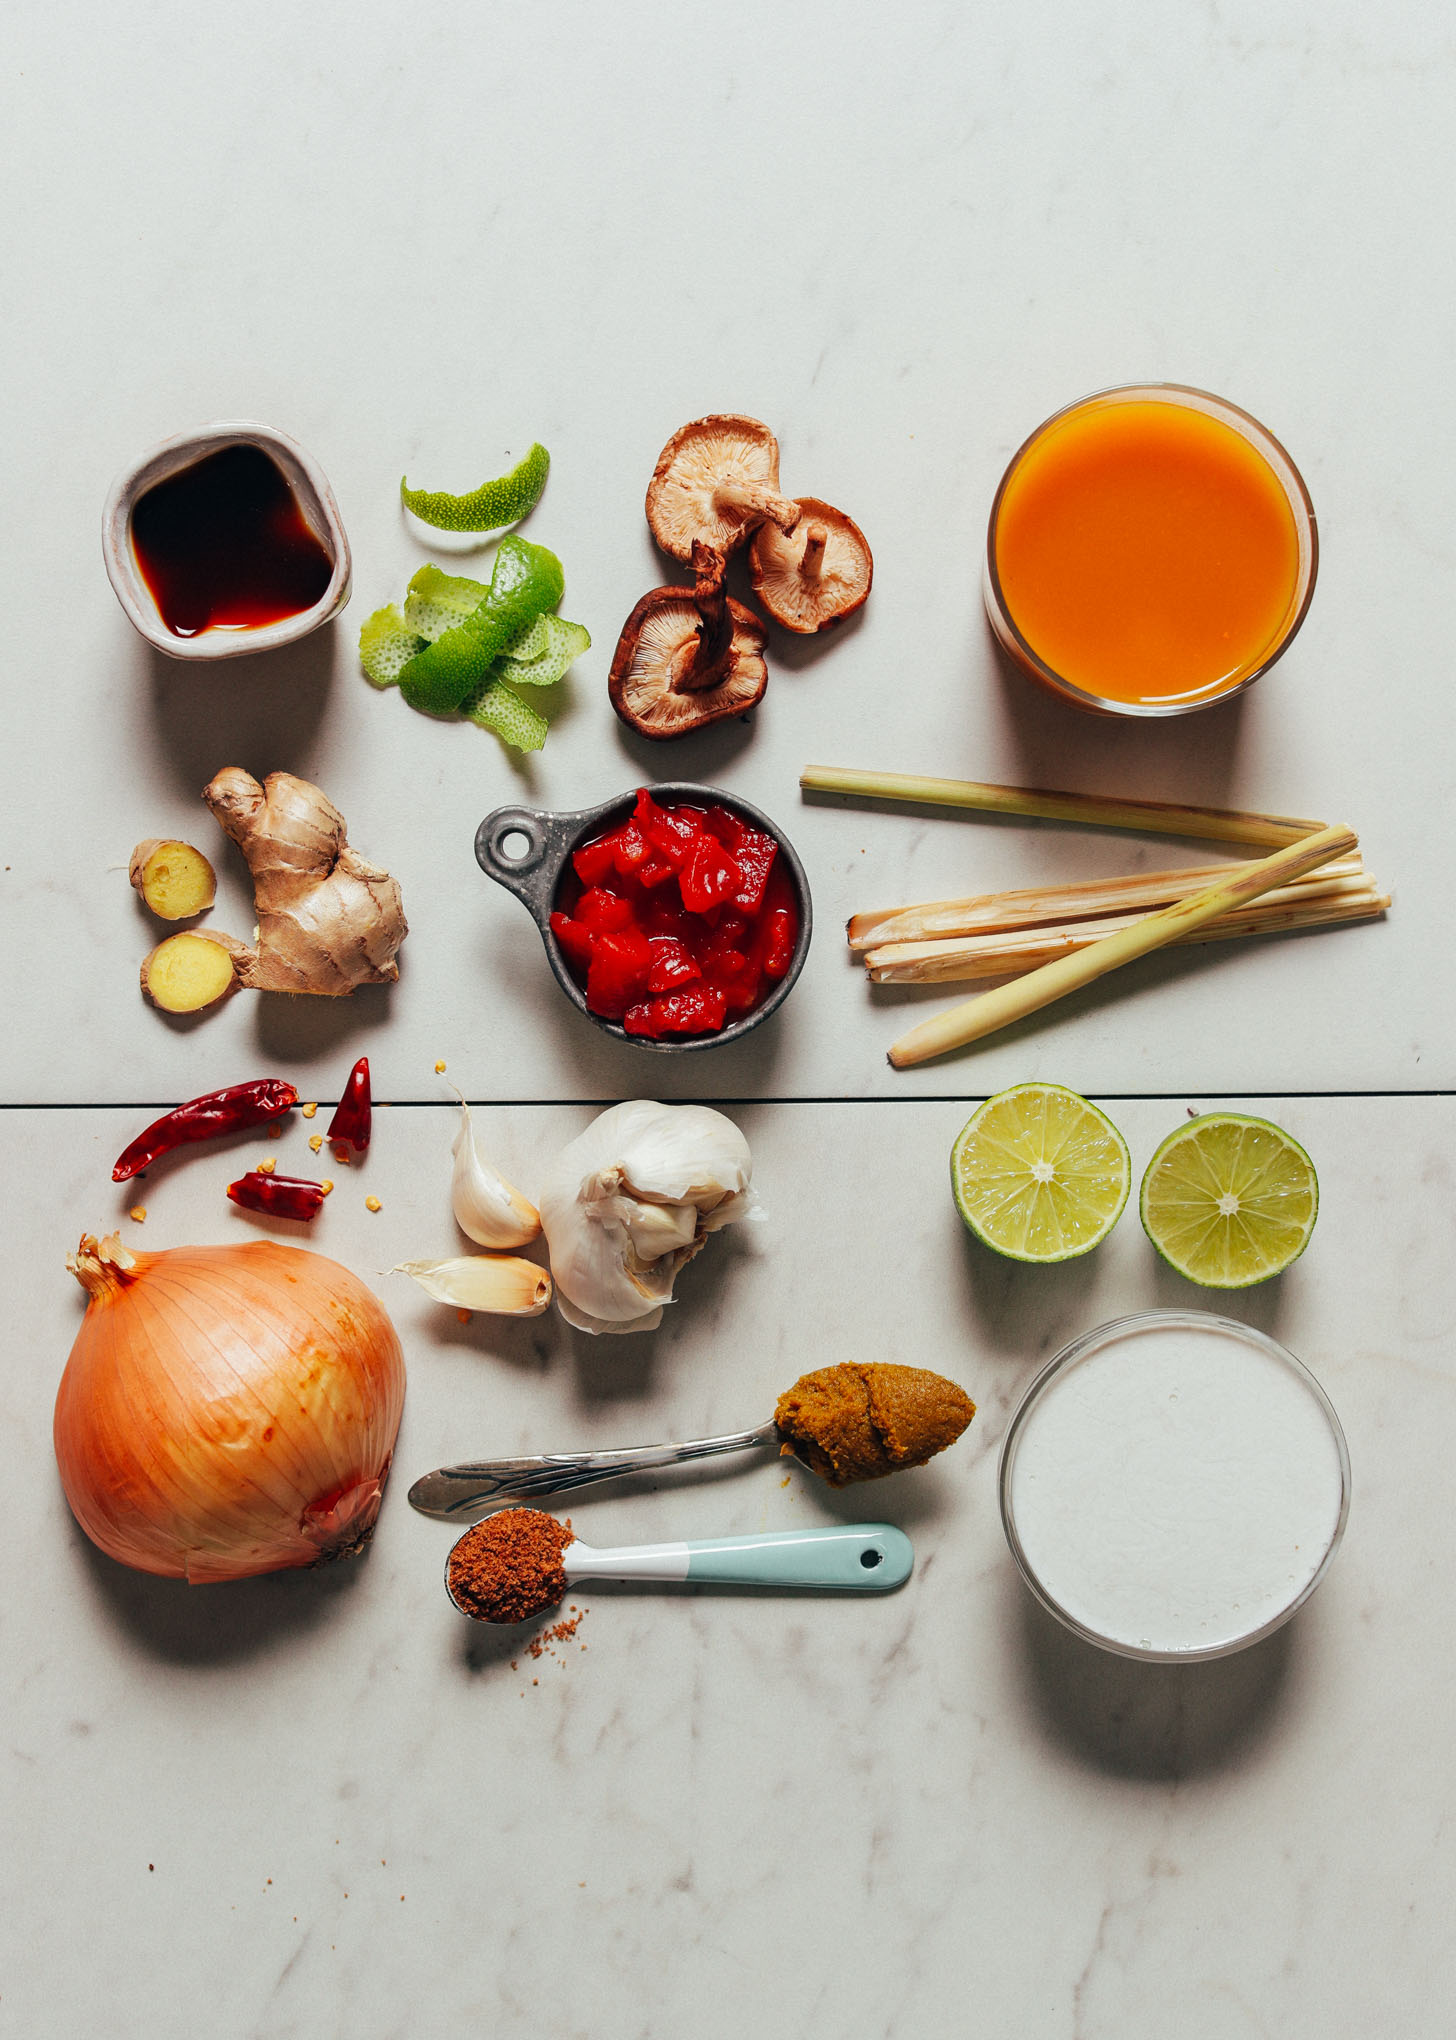 Ingredients for making our simple 1-Pot Vegan Tom Yum Soup recipe